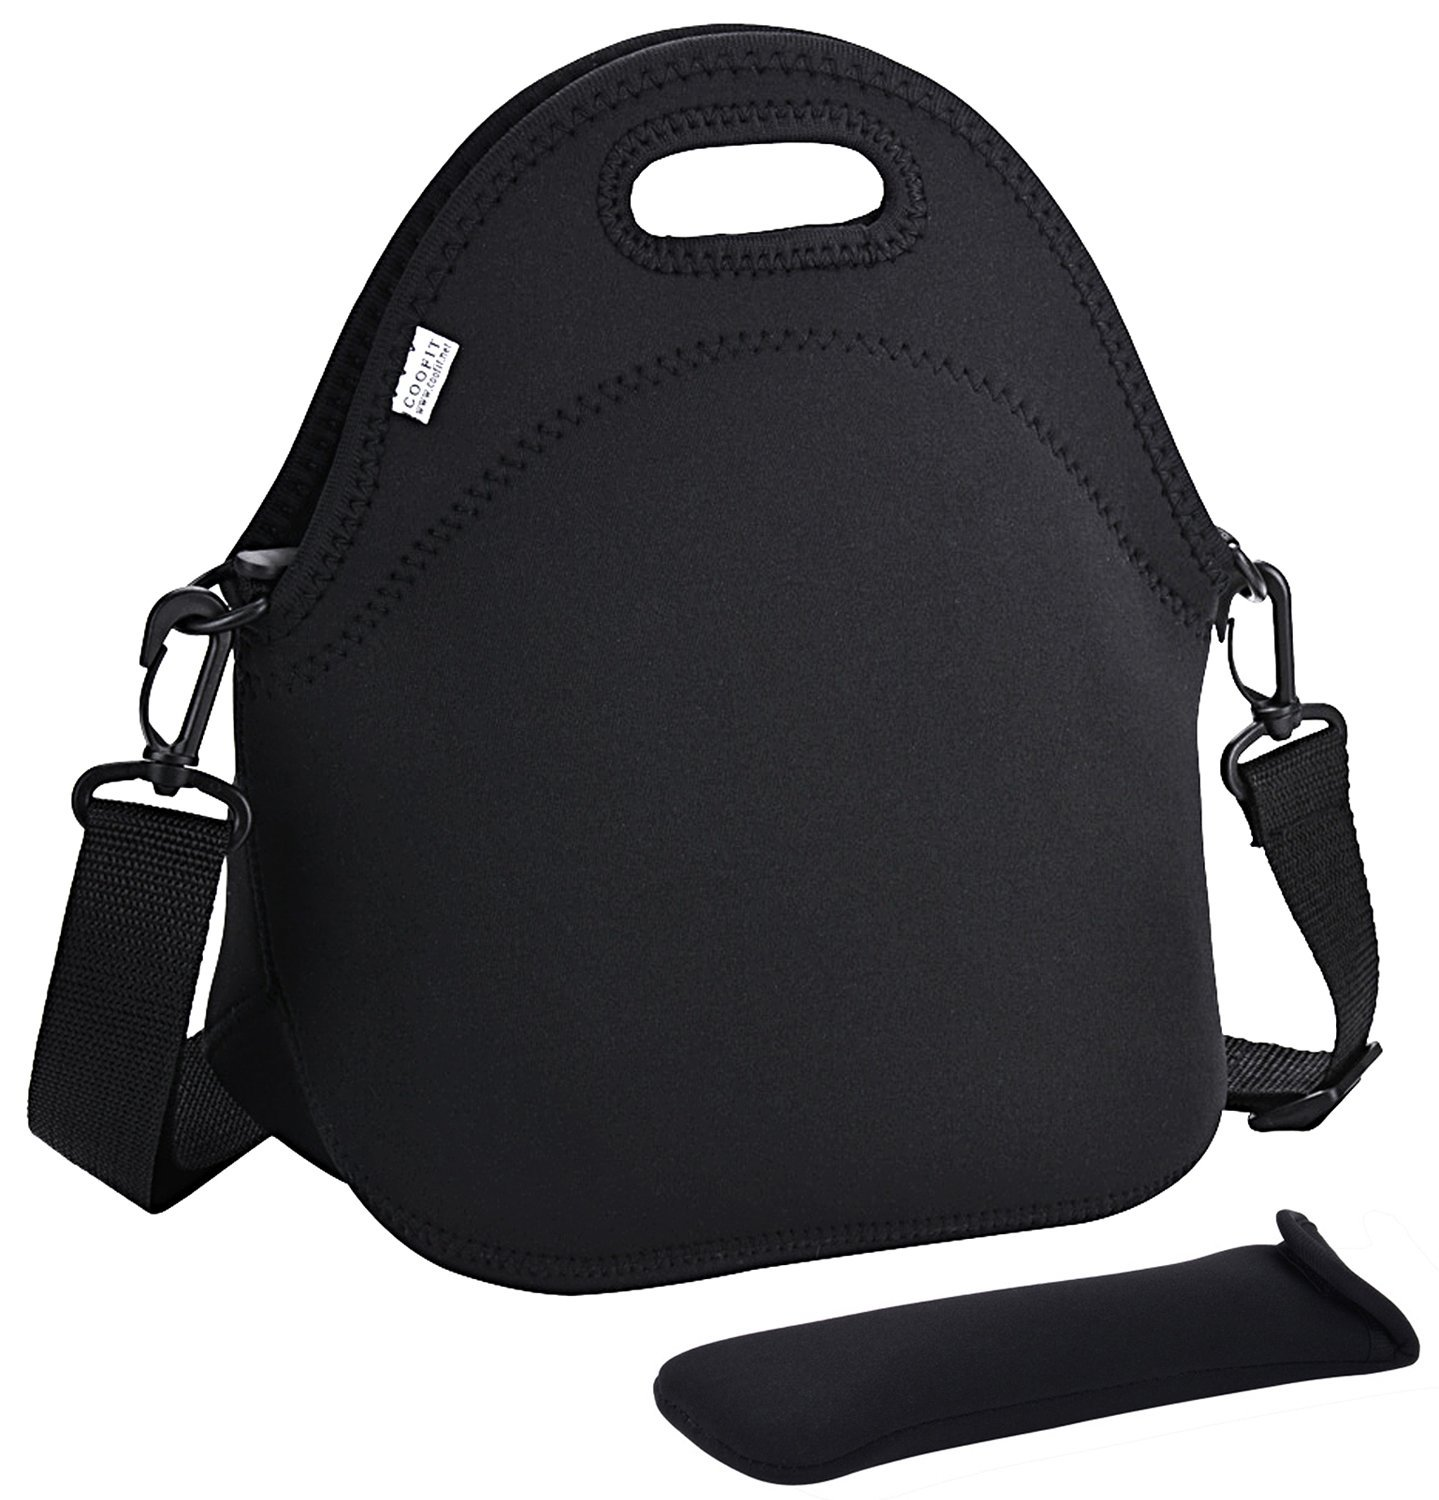 Coofit Neoprene Lunch Bag with Strap & Tableware Pocket Waterproof Insulated Lunch Bag Tote for Kids, Women